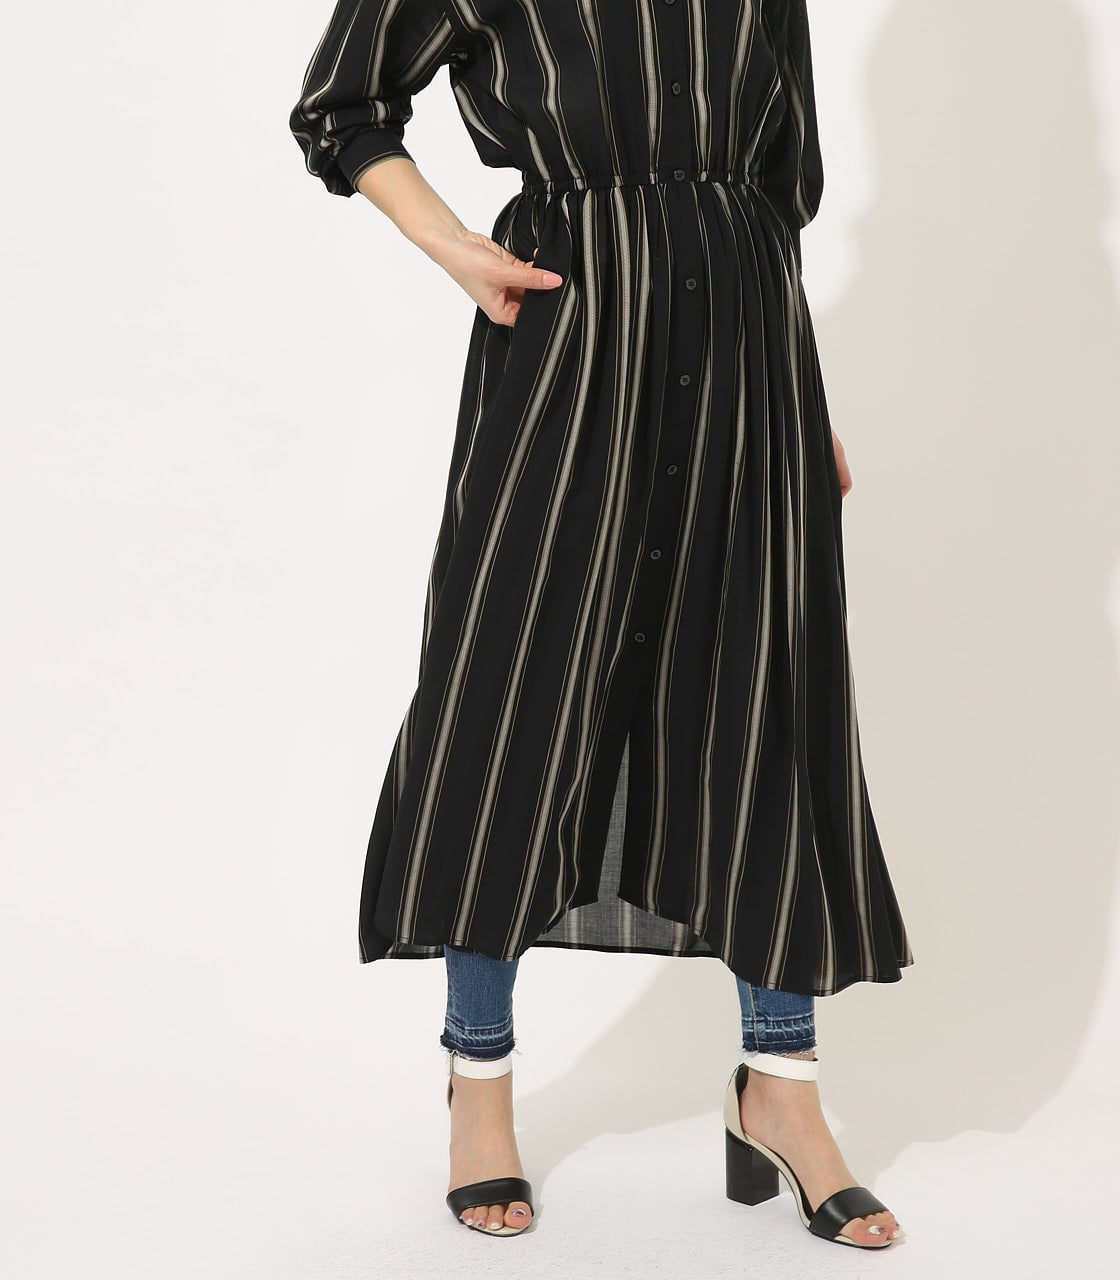 【AZUL BY MOUSSY】BROWSING MAXI ONEPIECE 【MOOK49掲載 90037】 詳細画像 柄BLK 3